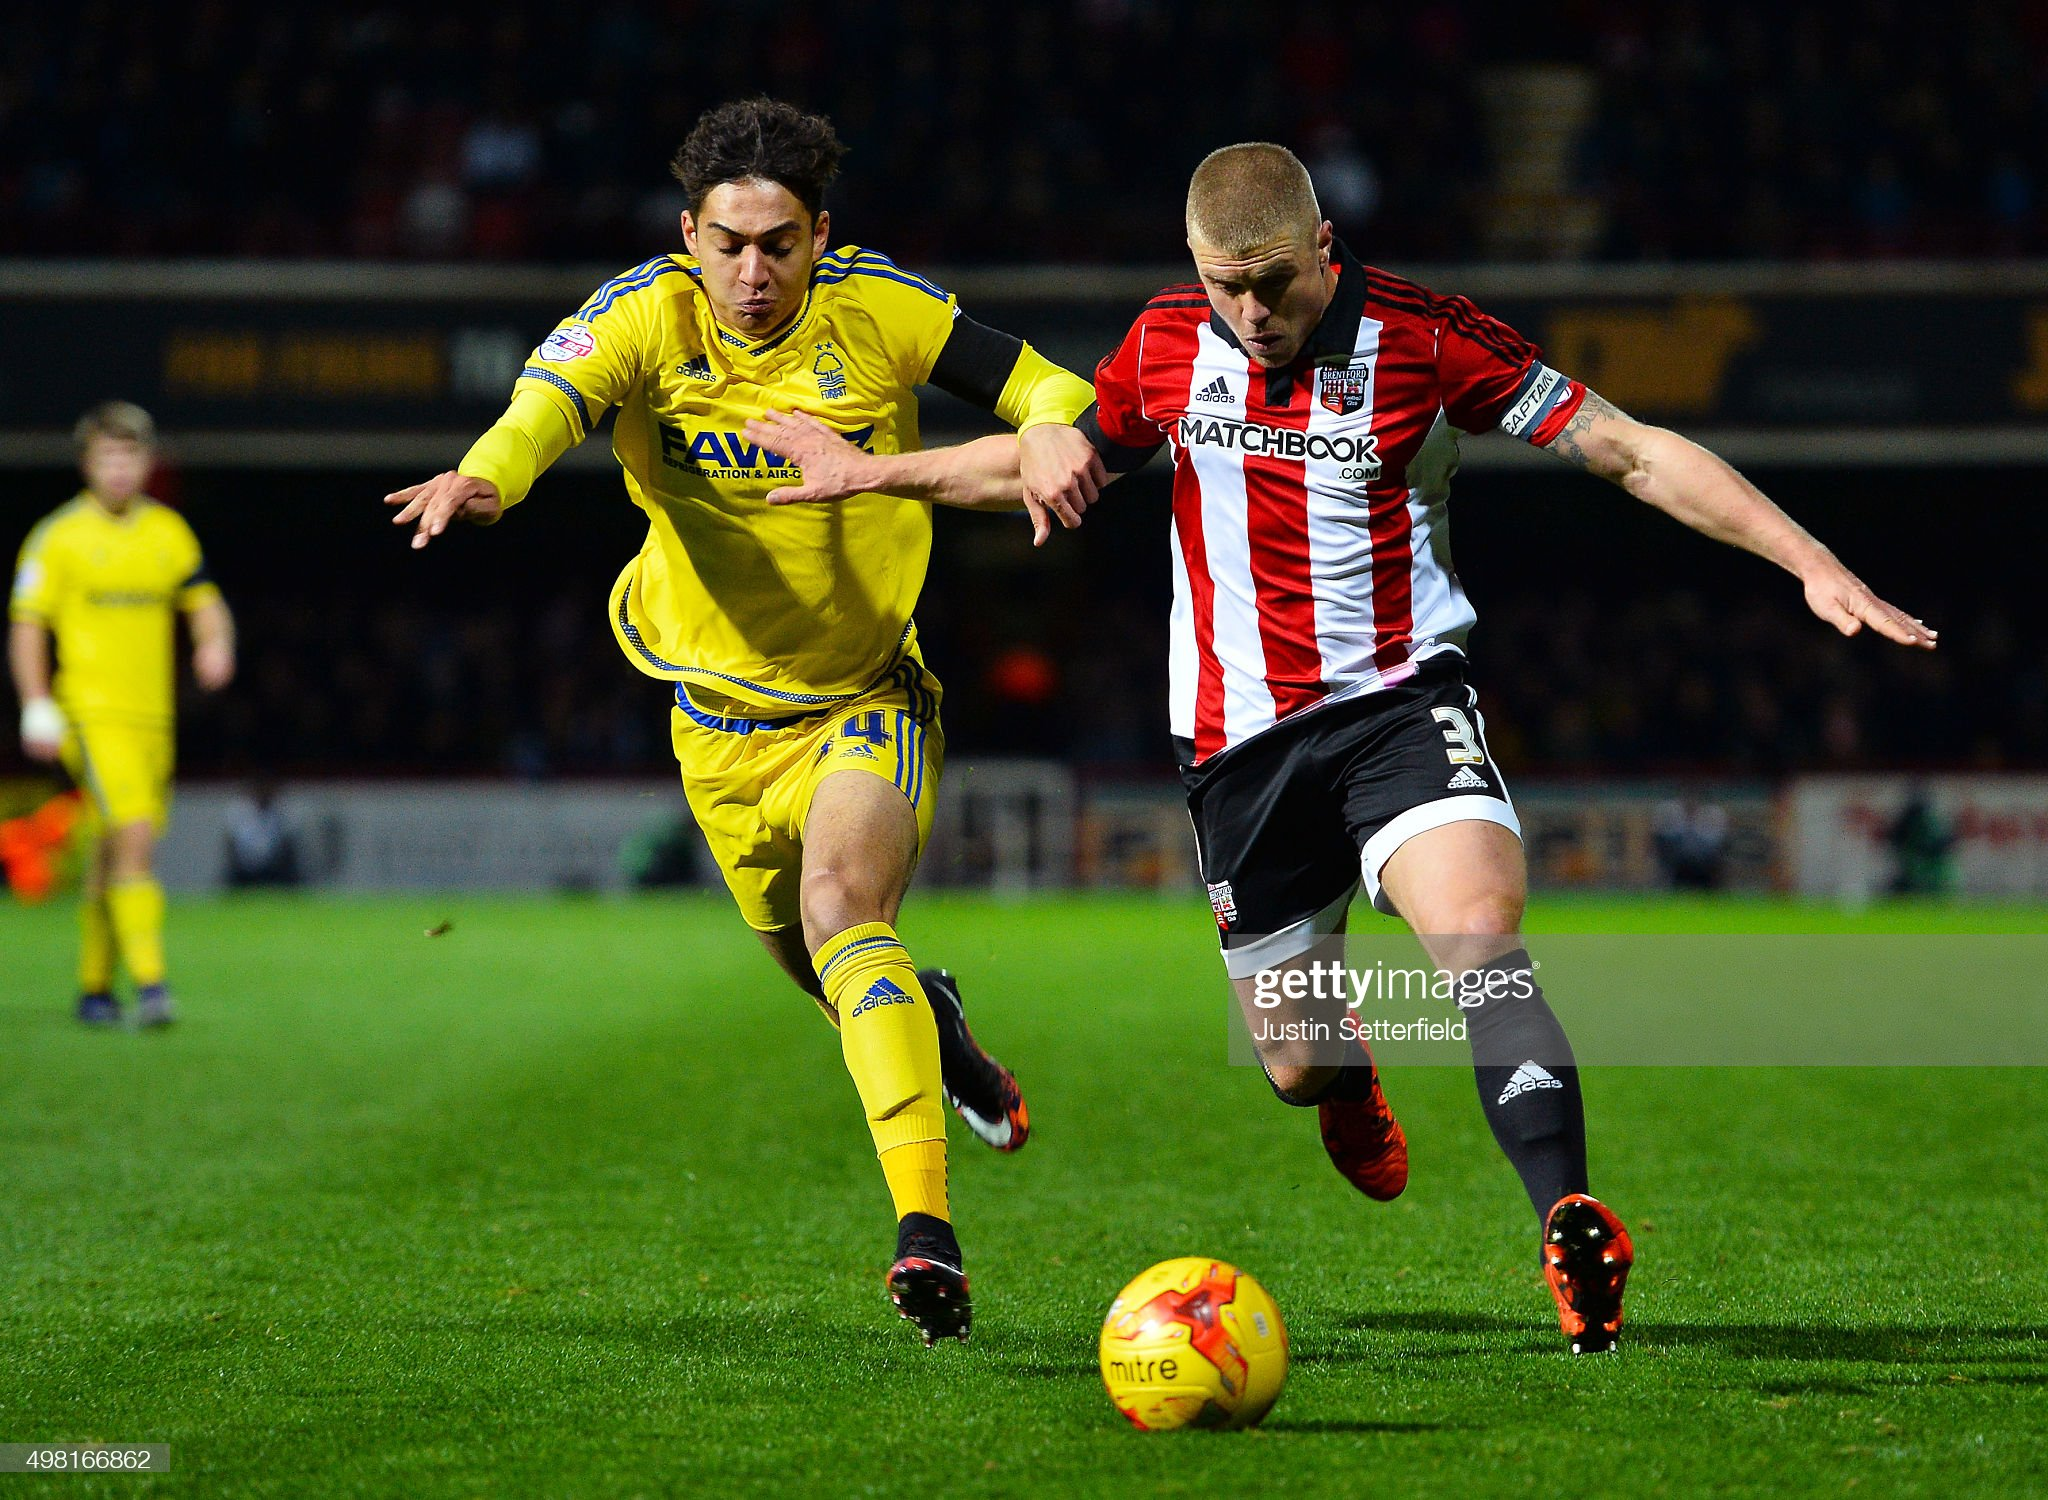 Brentford v Nottingham Forest preview, prediction and odds